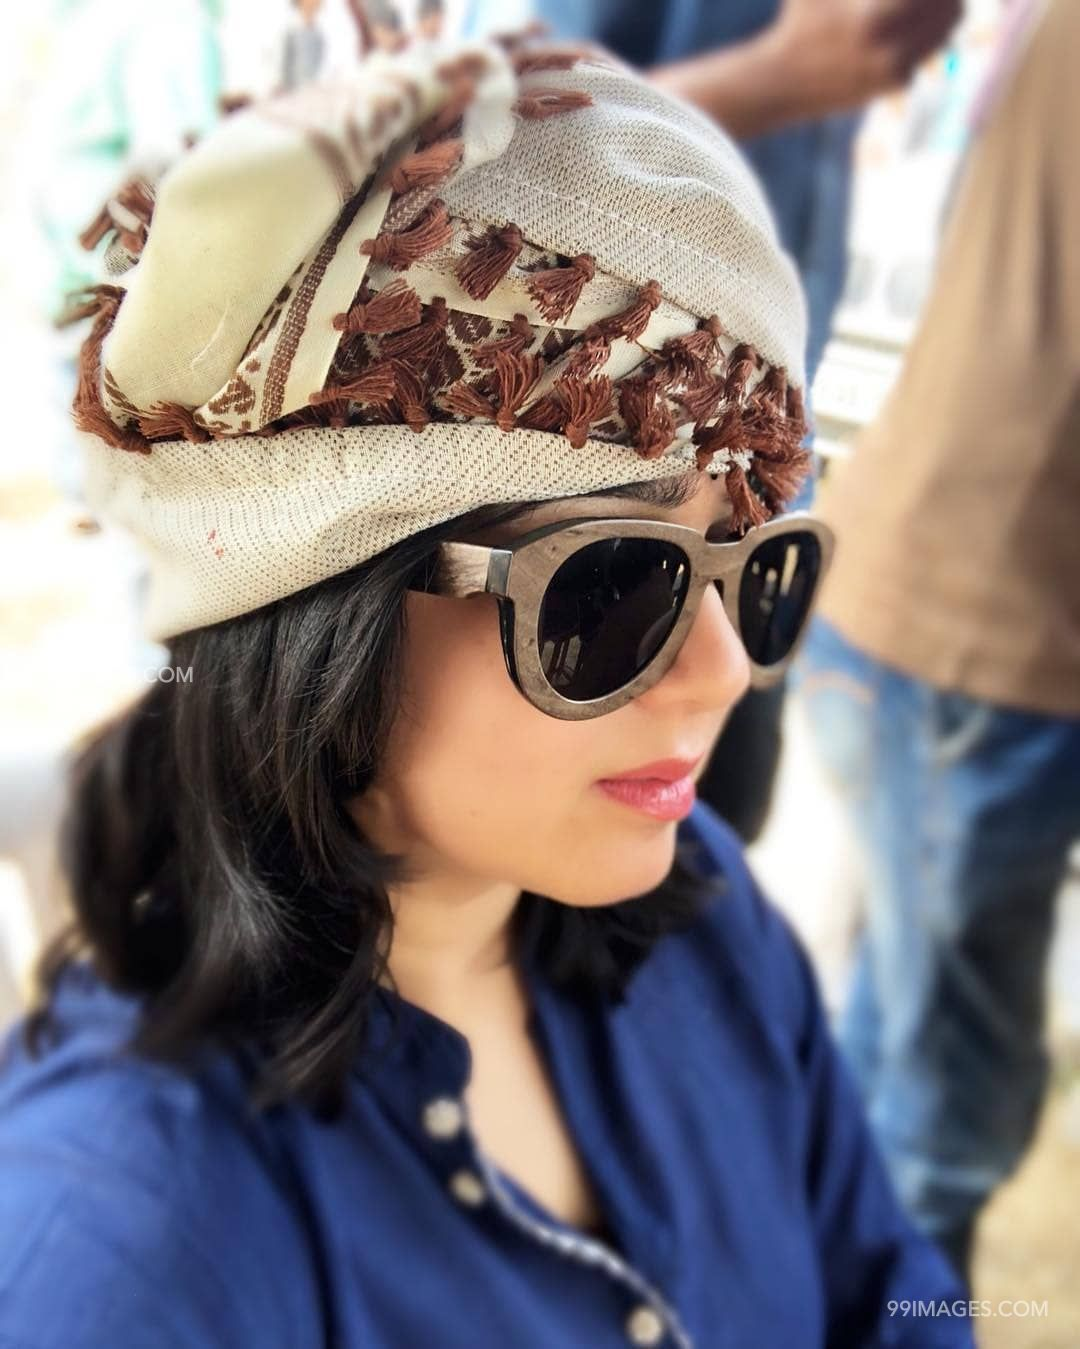 Charmy Kaur Beautiful Photos & Mobile Wallpapers HD (Android/iPhone) (1080p) (charmy kaur, actress, kollywood, tollywood, hd wallpapers) (25977) - Charmy Kaur